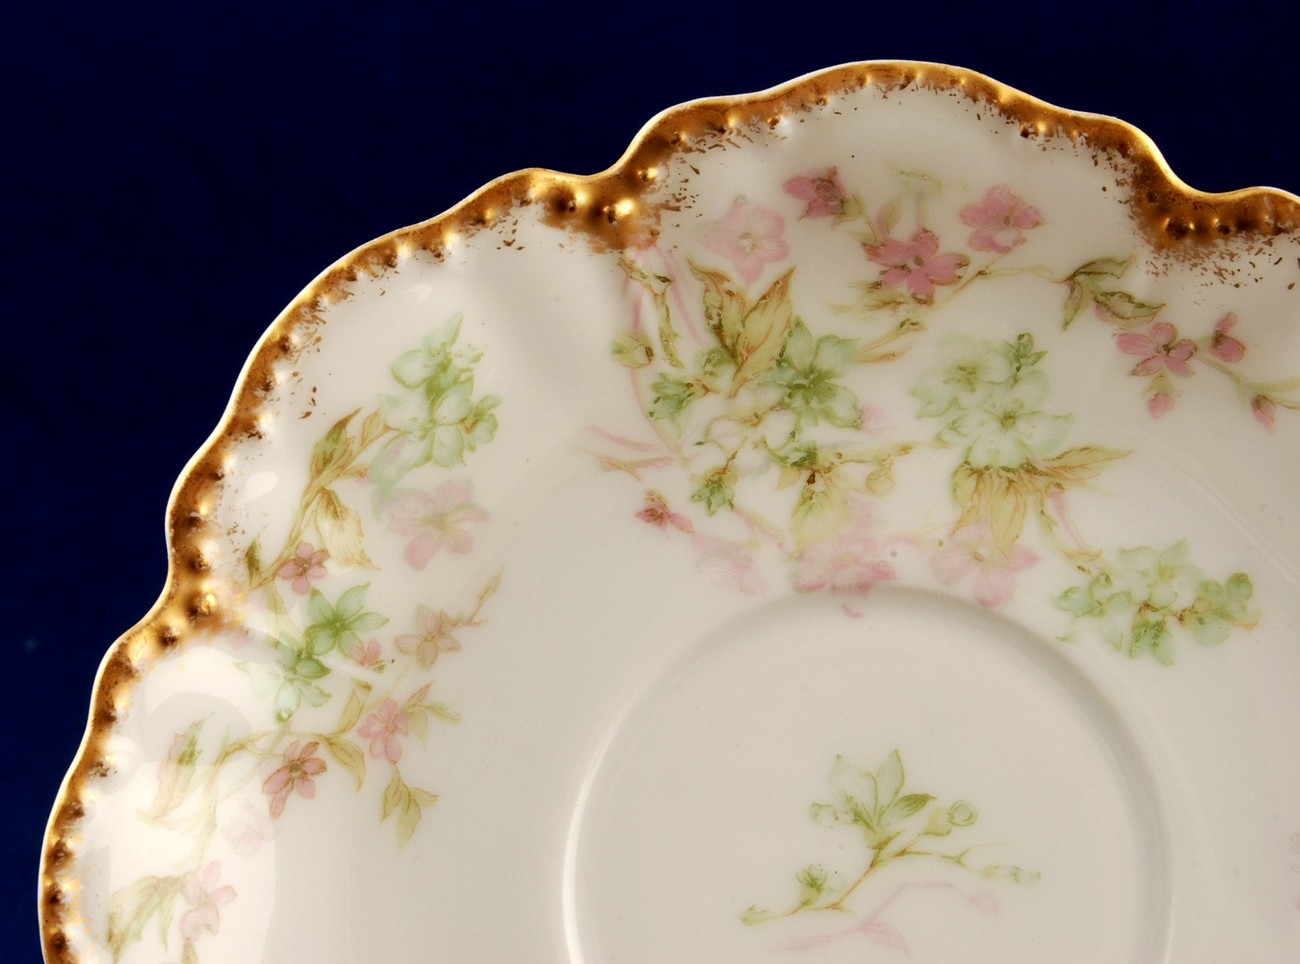 Haviland Limoges Demitasse Saucer for Chocolate Cup Scalloped Beaded Gold Trim